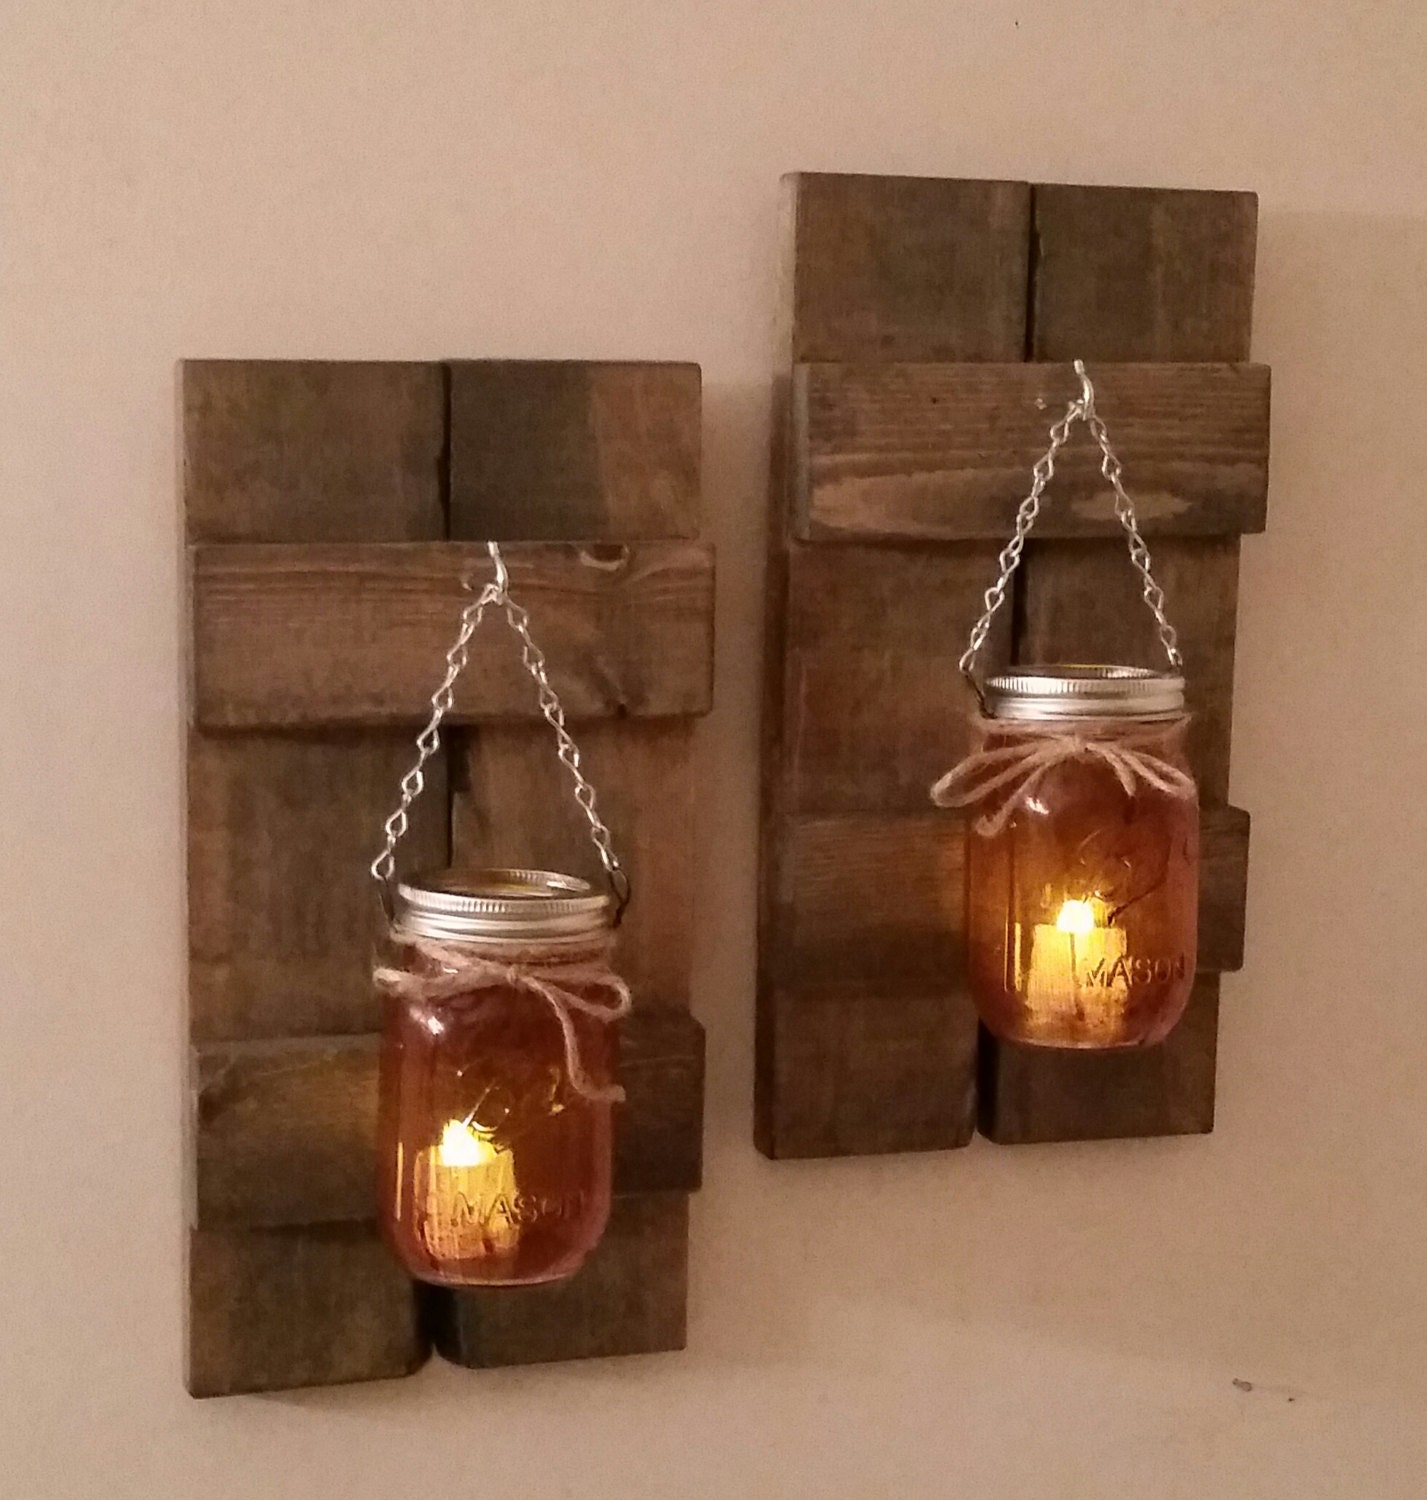 Rustic Wall Sconce Candle Holder : Rustic Wood Wall Sconce with Ball Mason Jar Candle Holder with